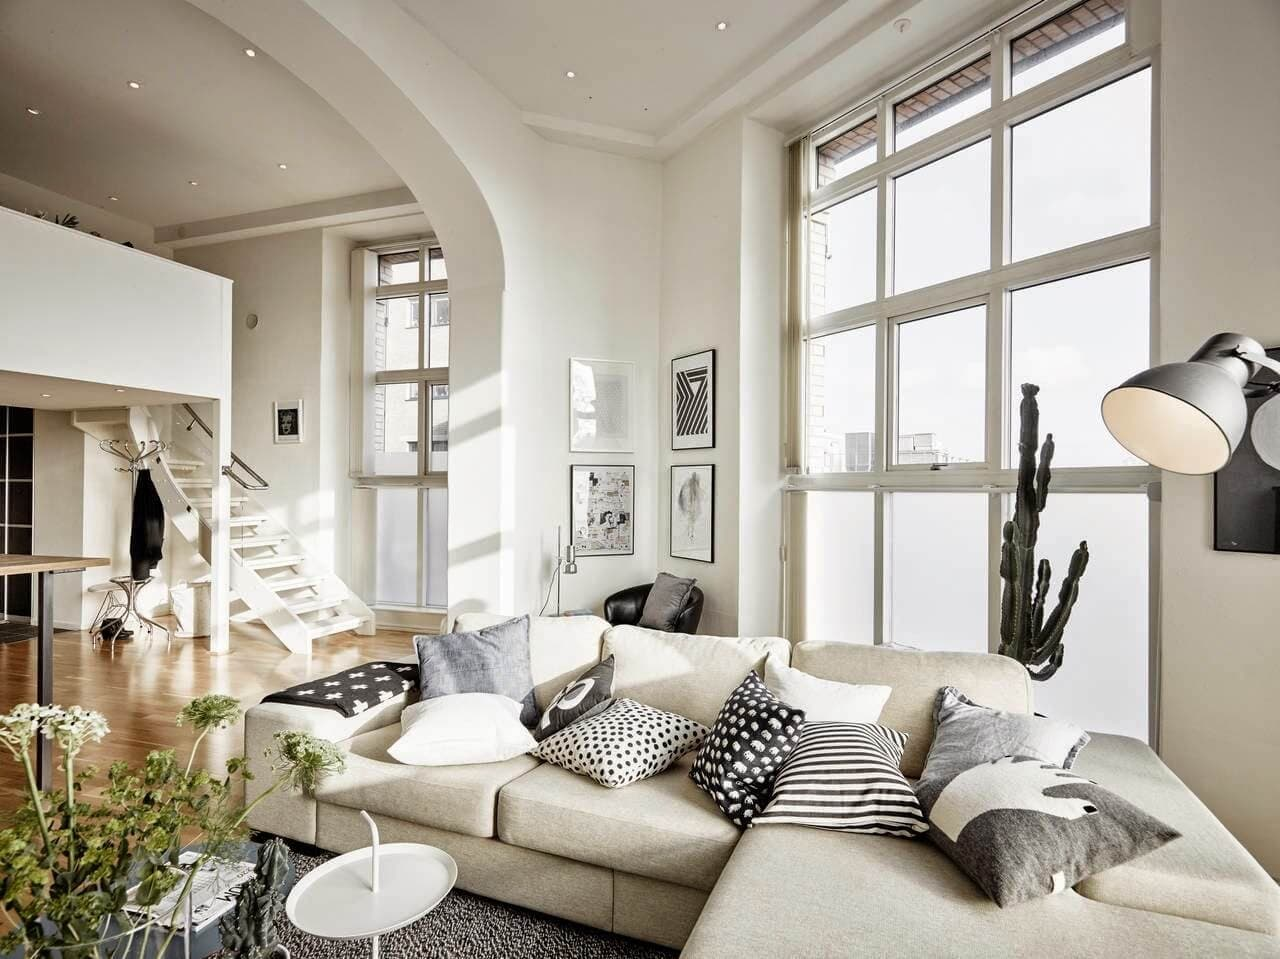 The Use of Monochromatic Interior Design to Create Stunning Interior. Large casual space with hige sash window